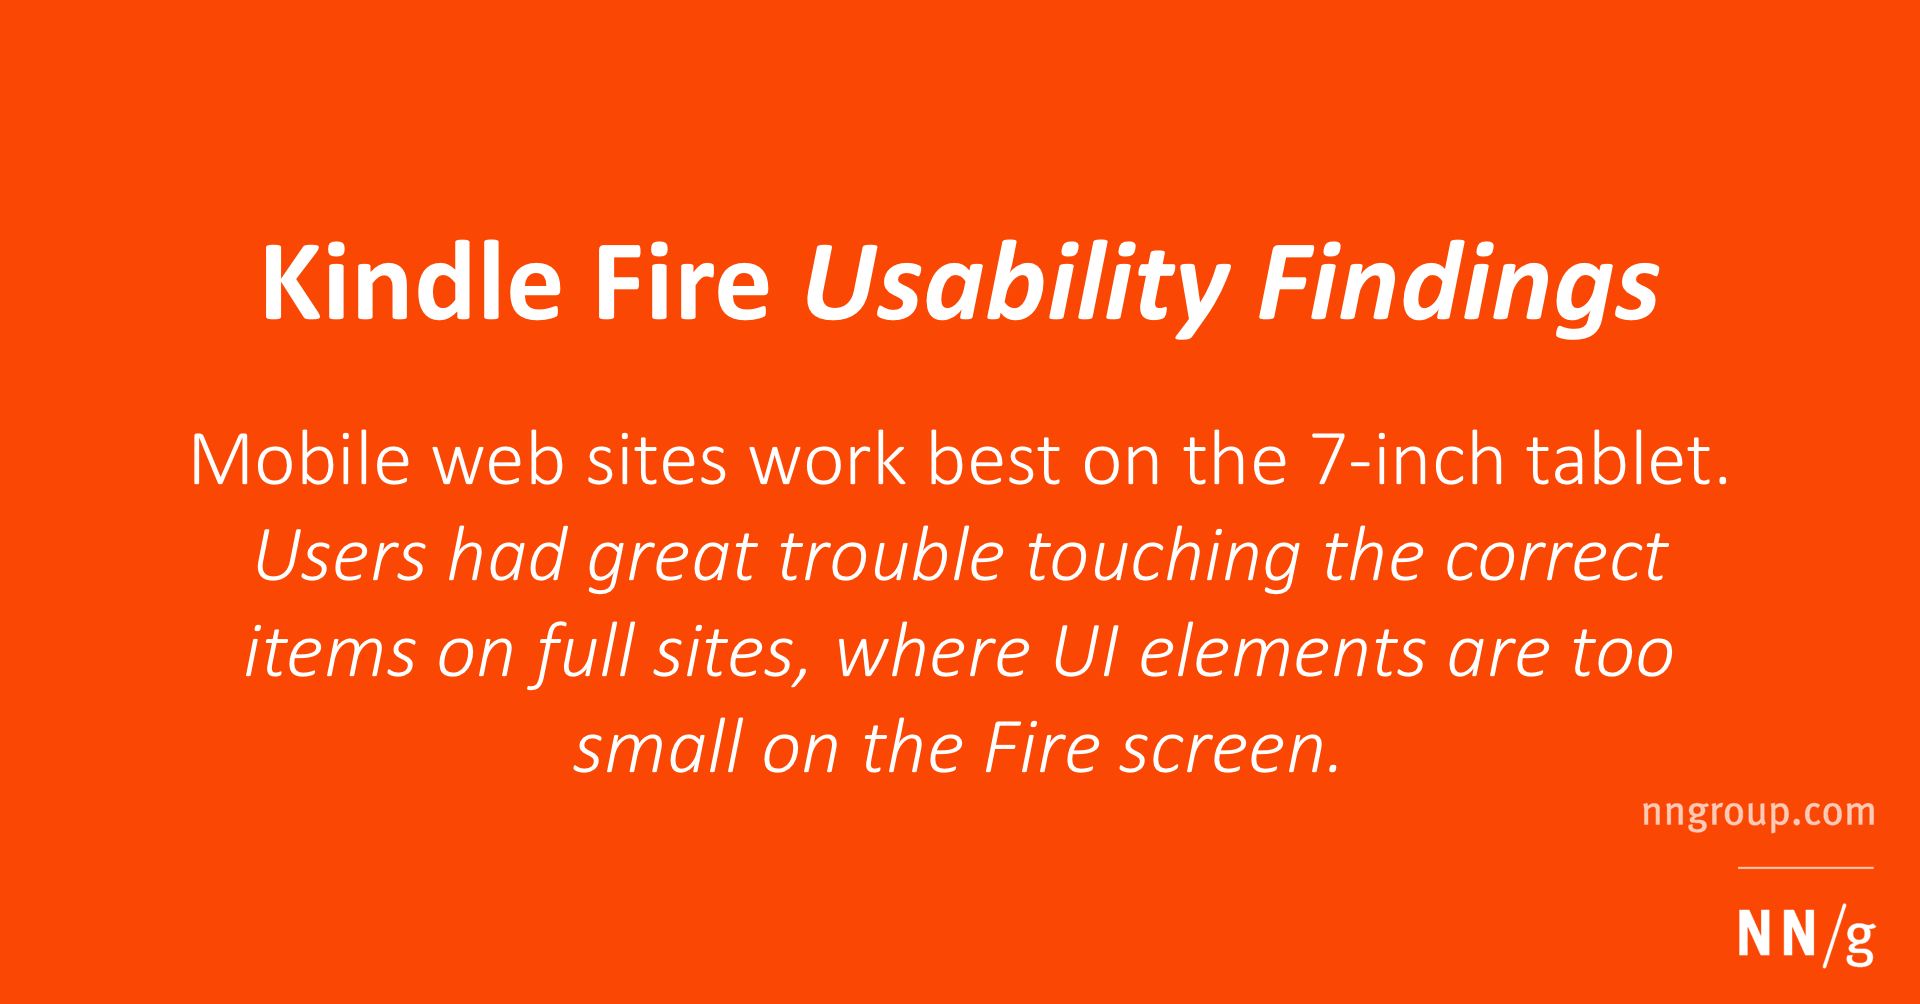 Kindle Fire Usability Findings